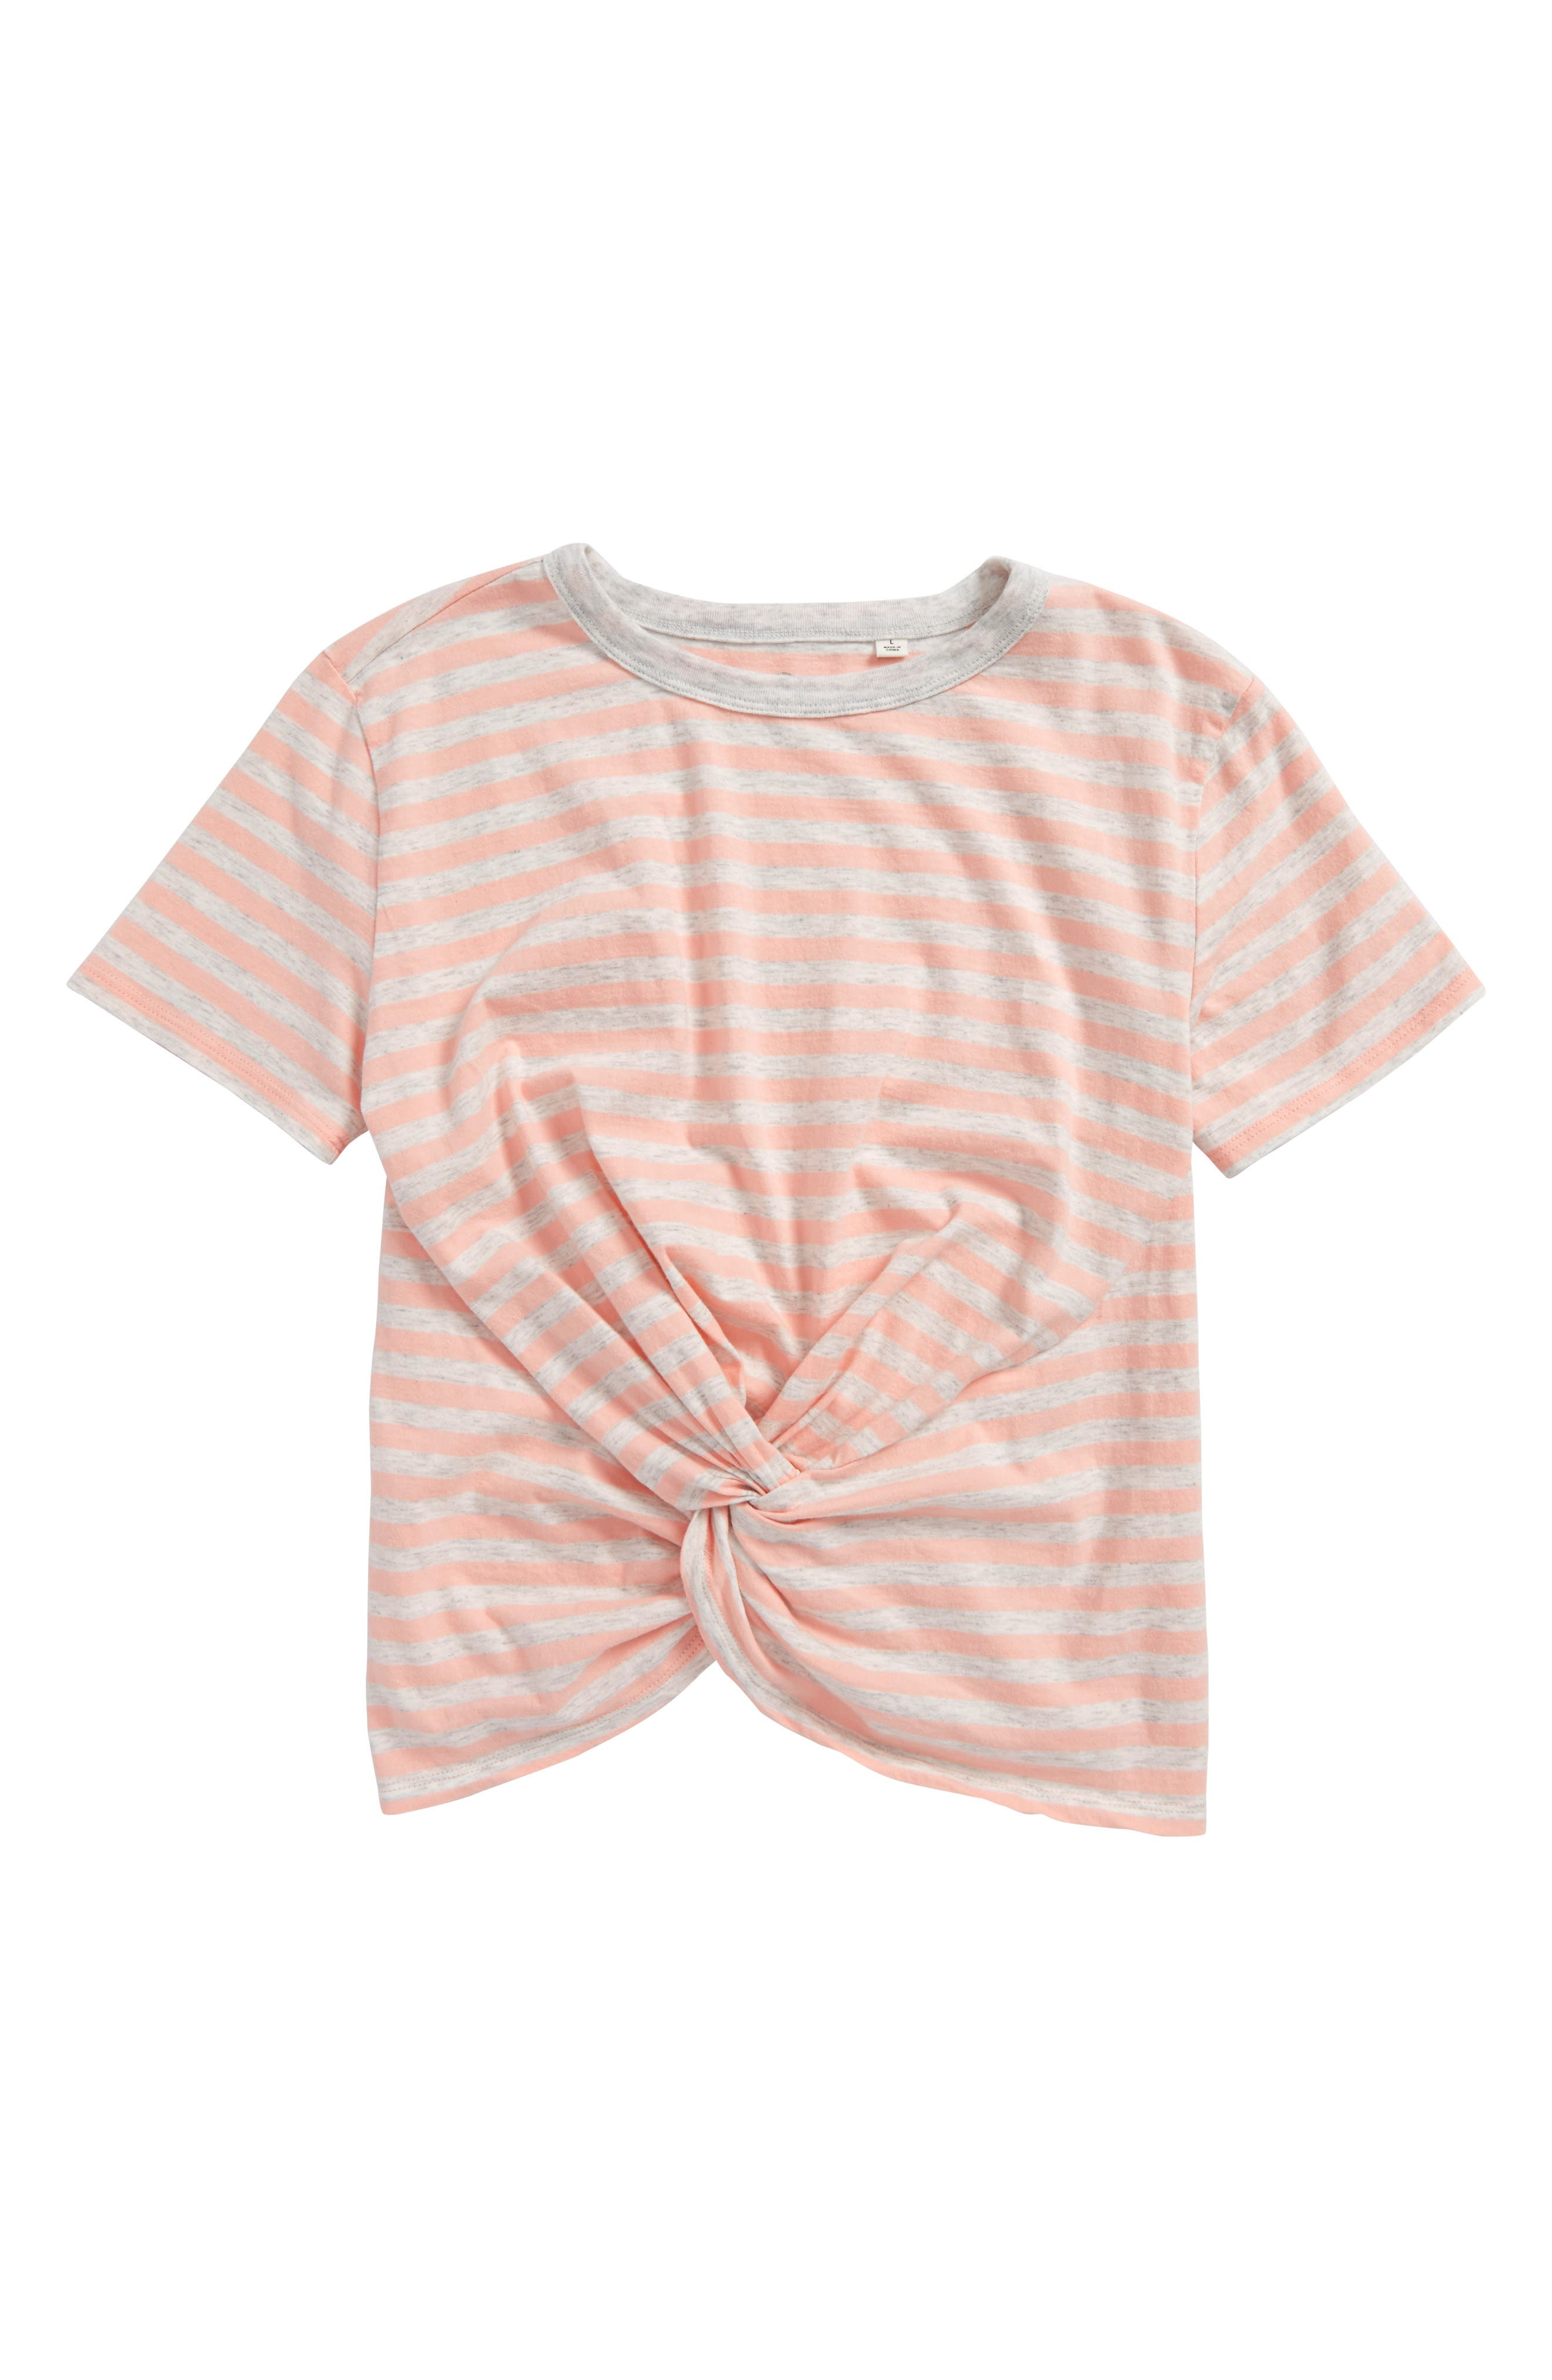 Knot Front Stripe Tee,                             Main thumbnail 1, color,                             677